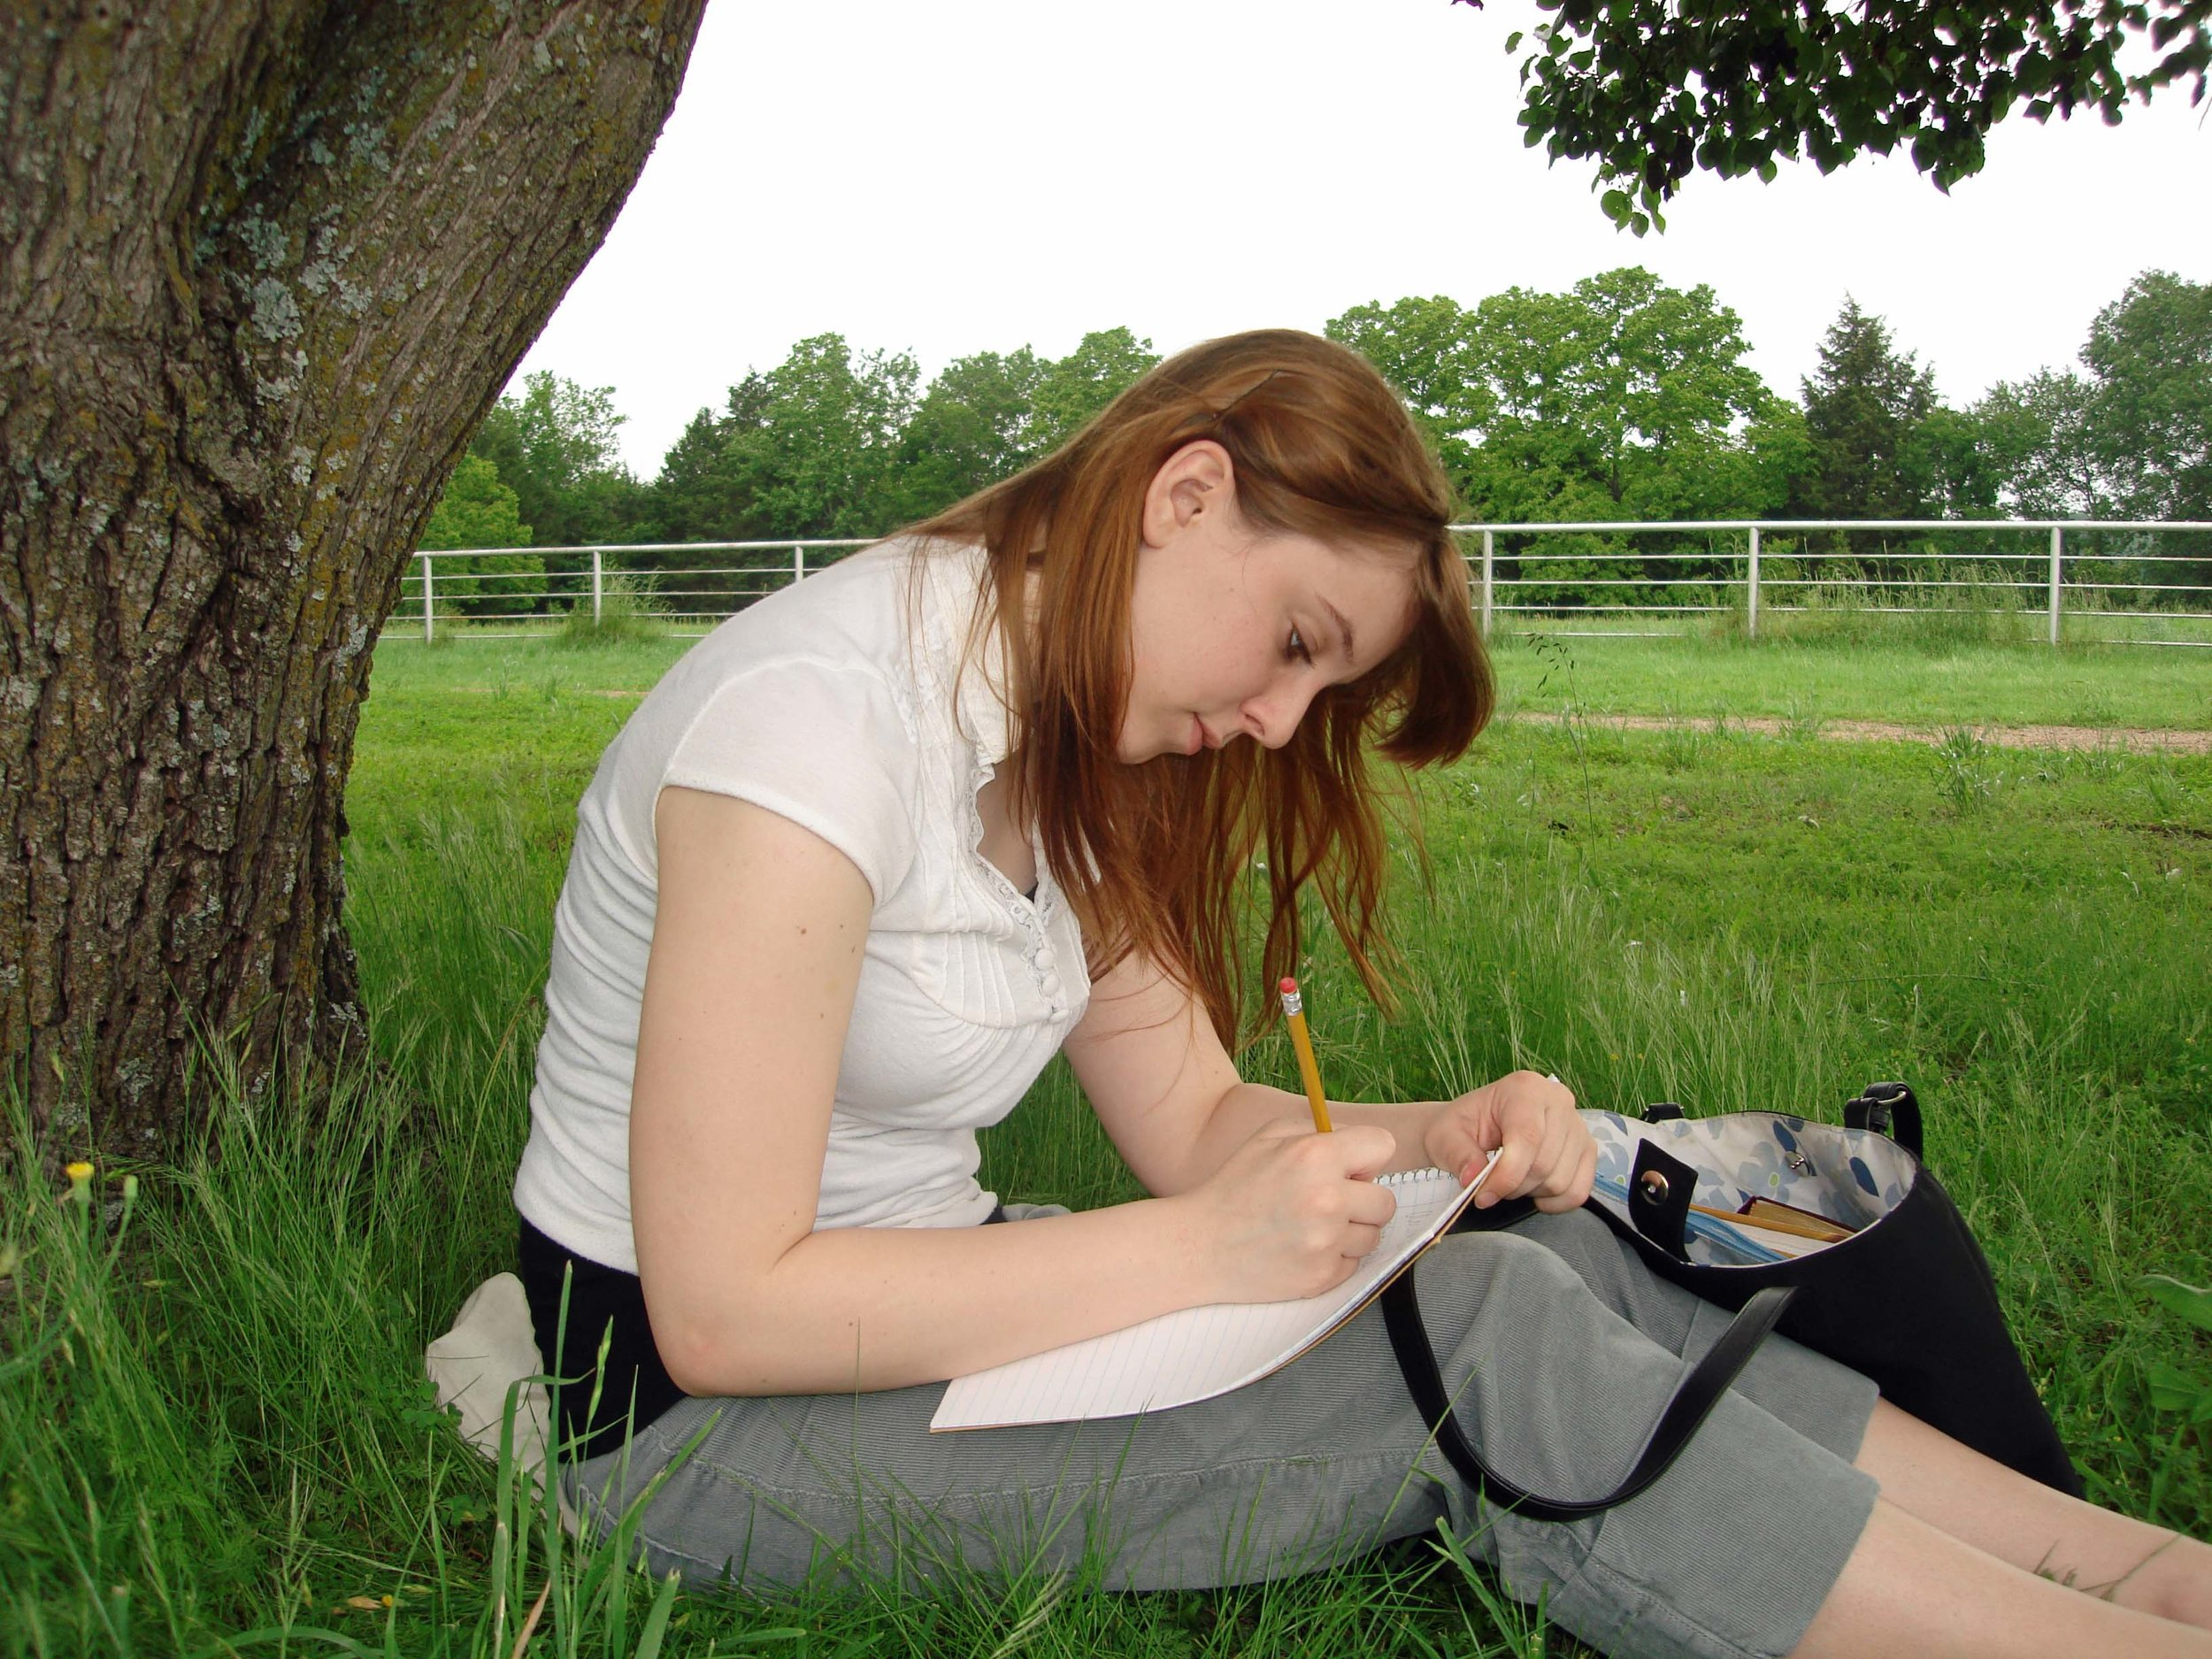 dreamstimefree_3099247 (girl writing).jpg